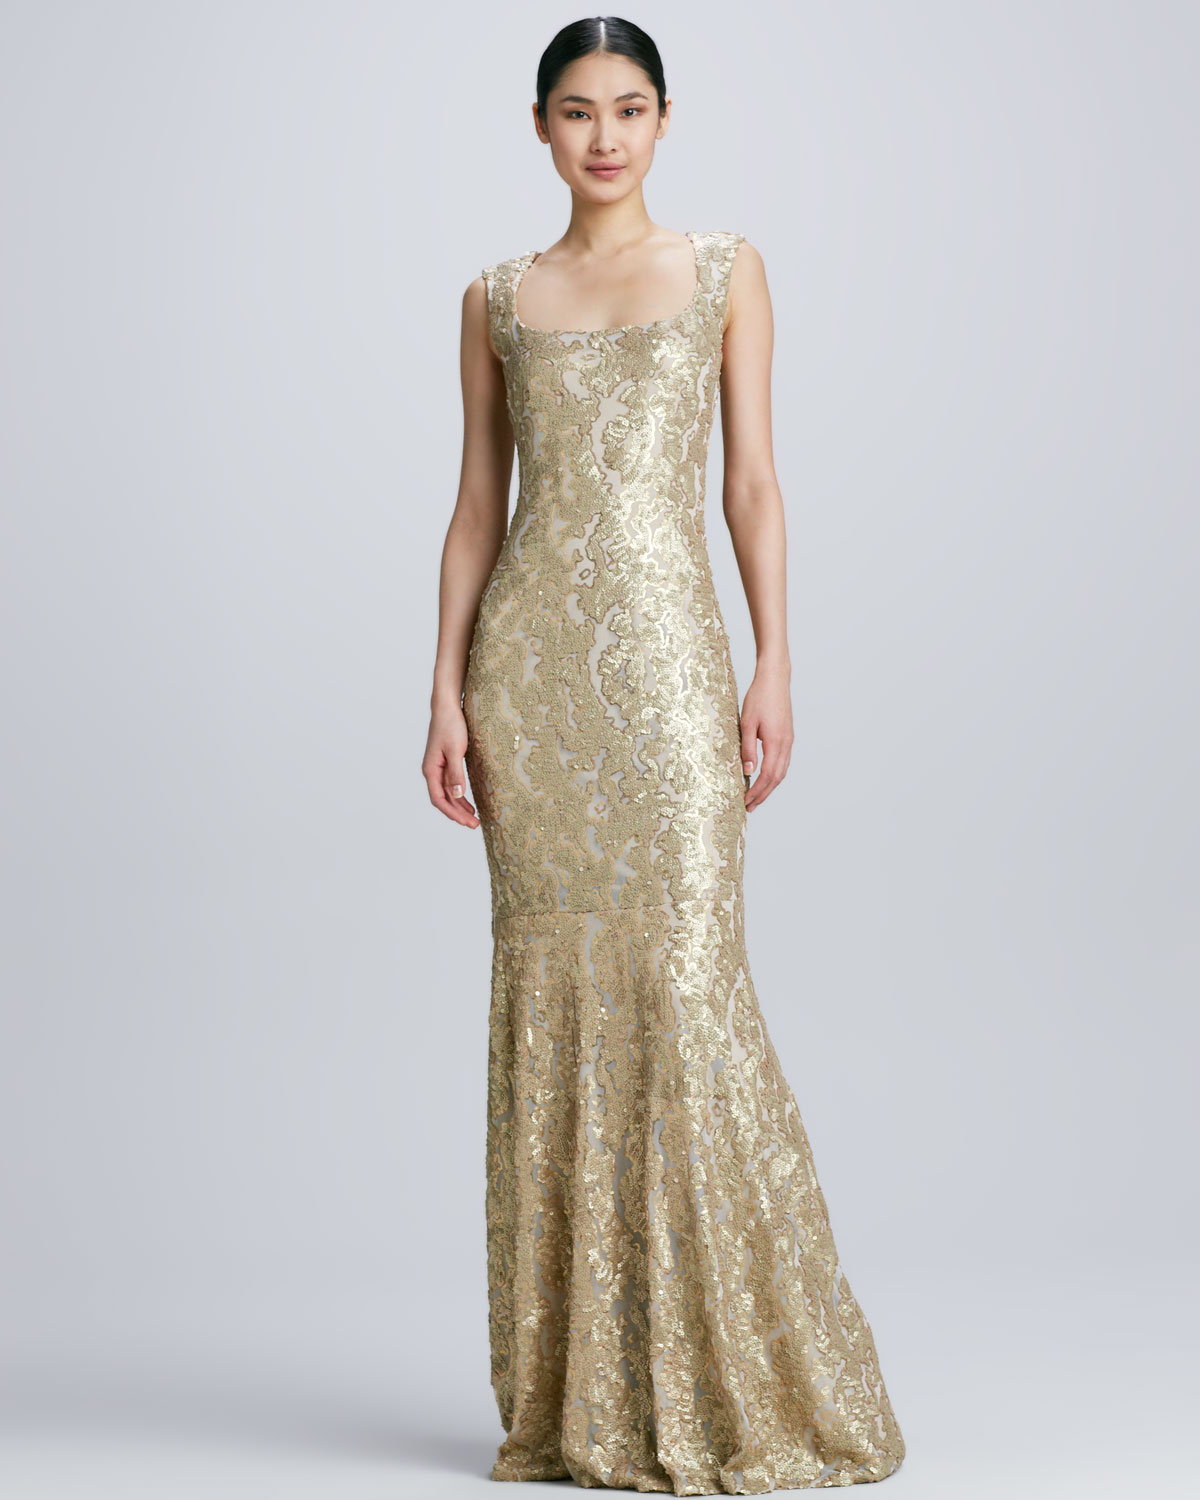 Lyst - David Meister Sleeveless Gown with Lace Overlay in Metallic